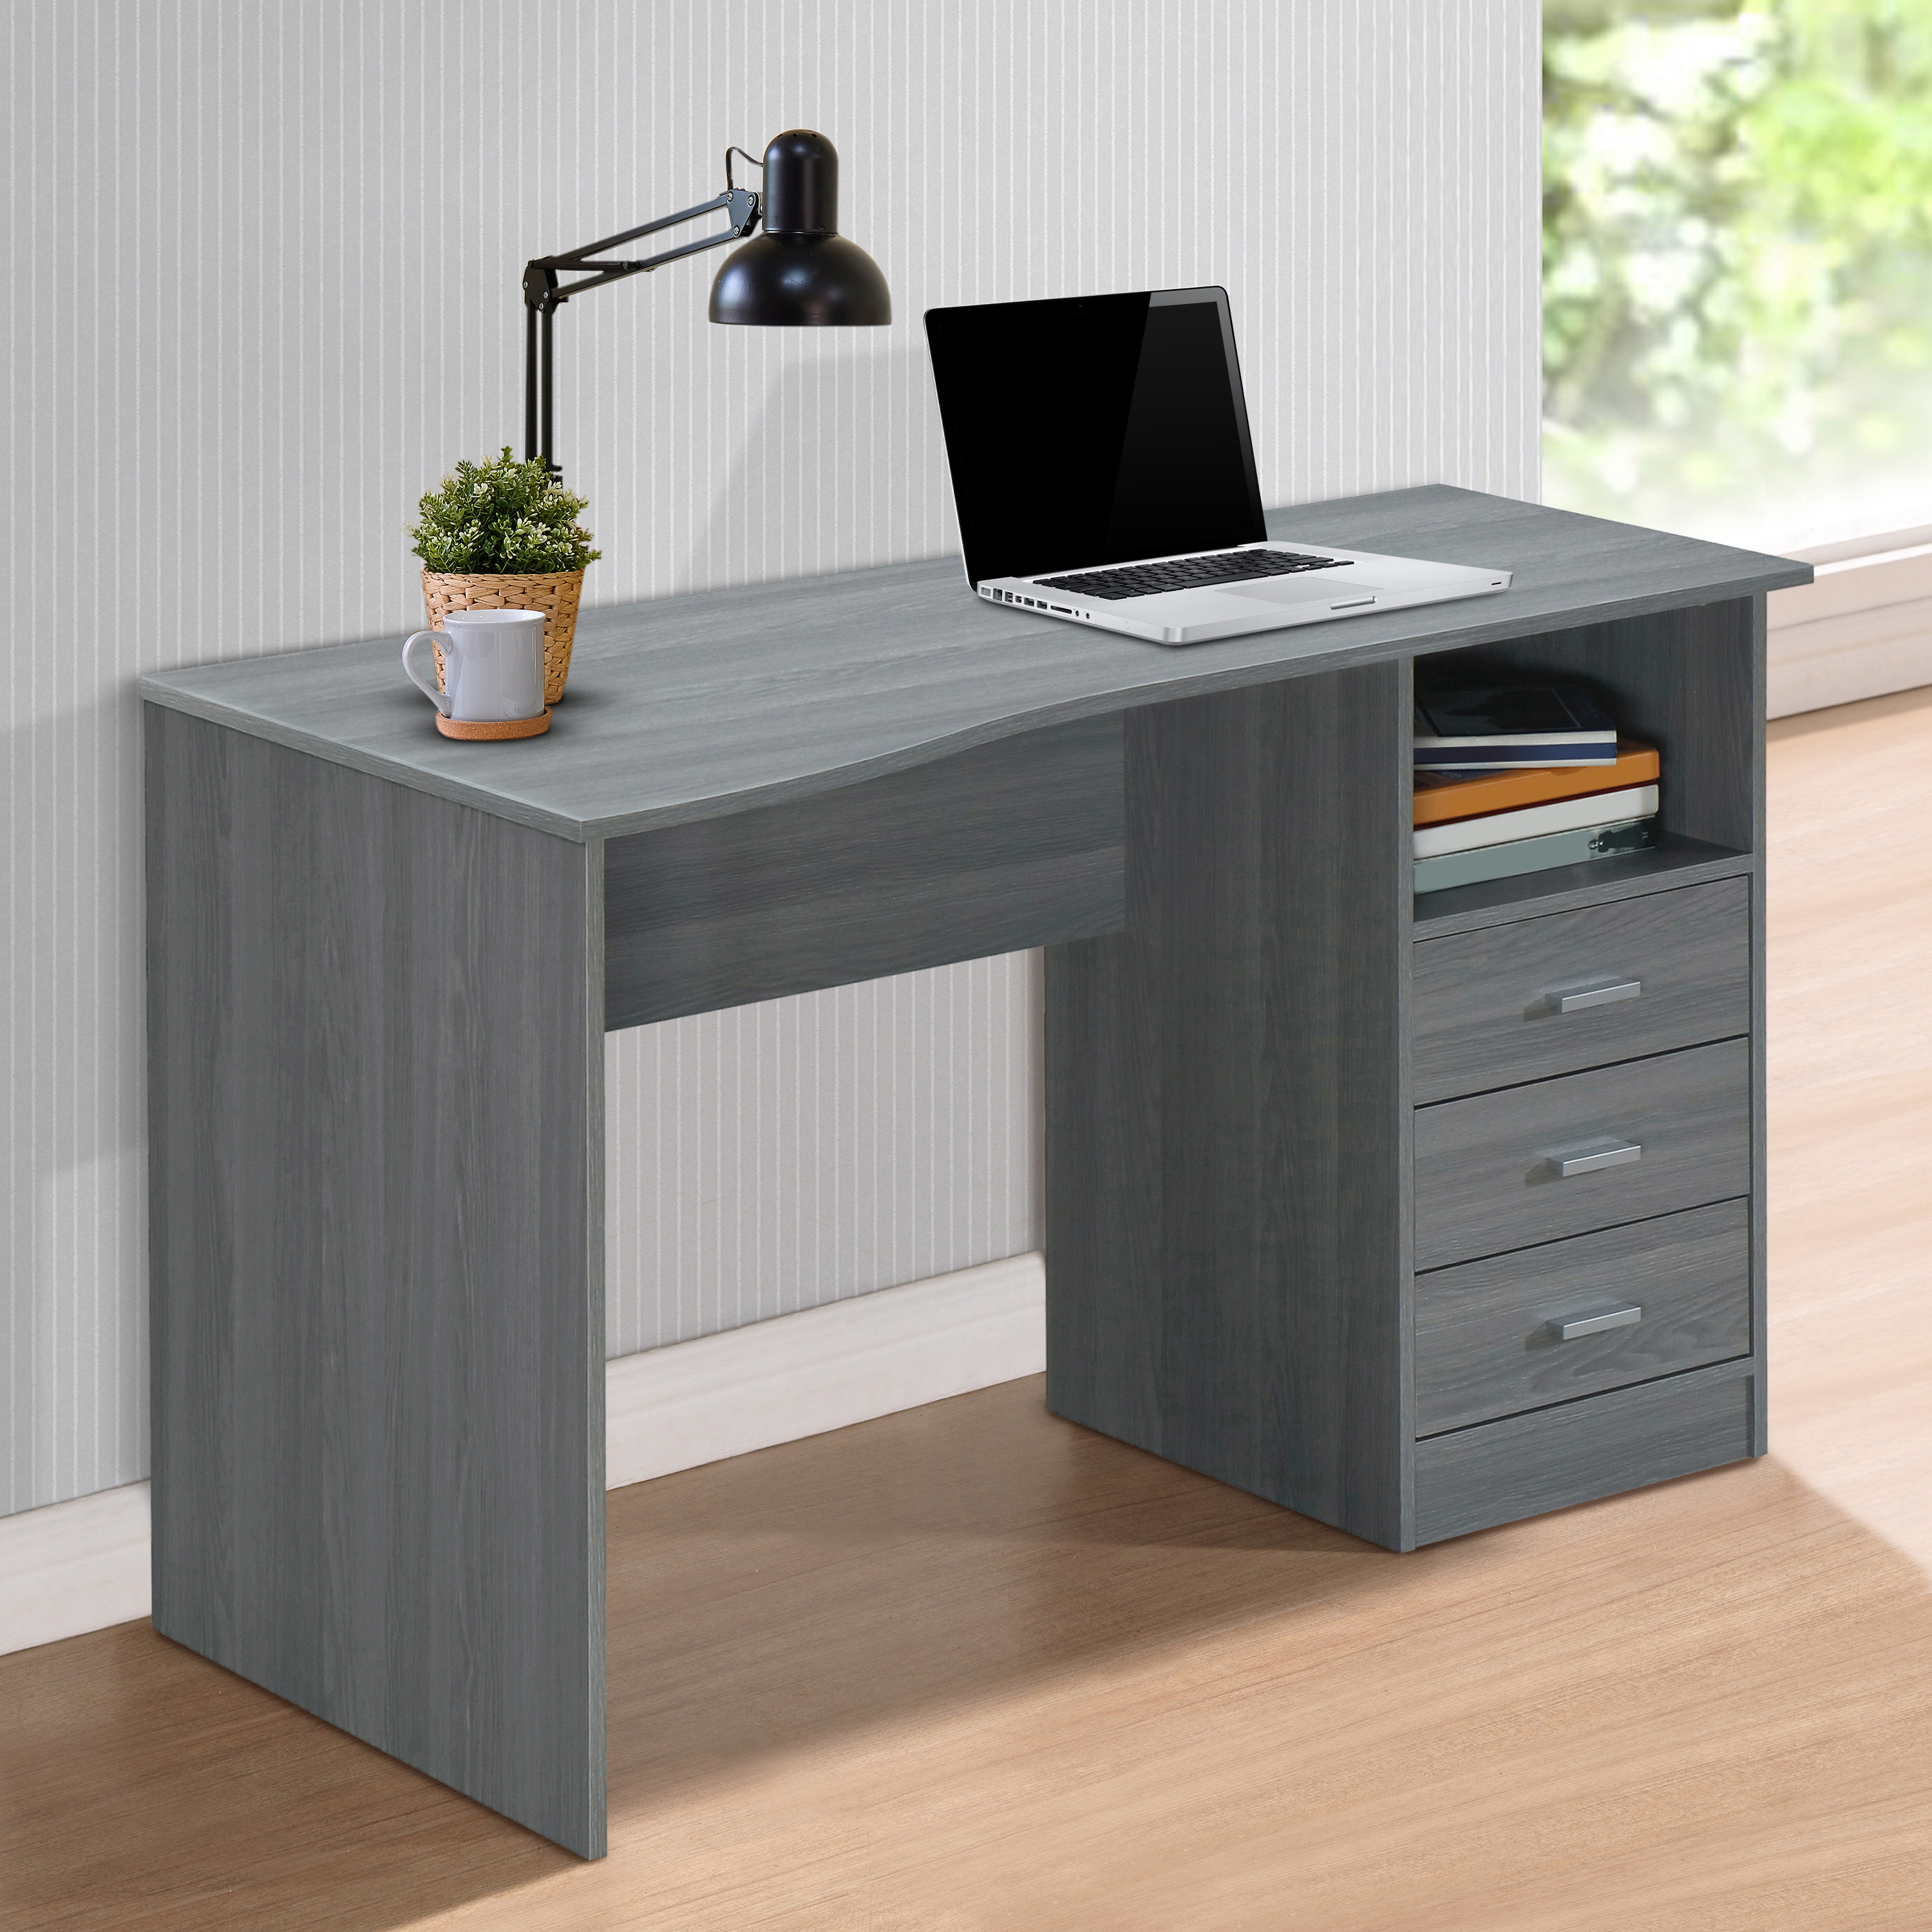 Techni Mobili Classic Computer Desk With Drawers Grey Walmart Com Walmart Com